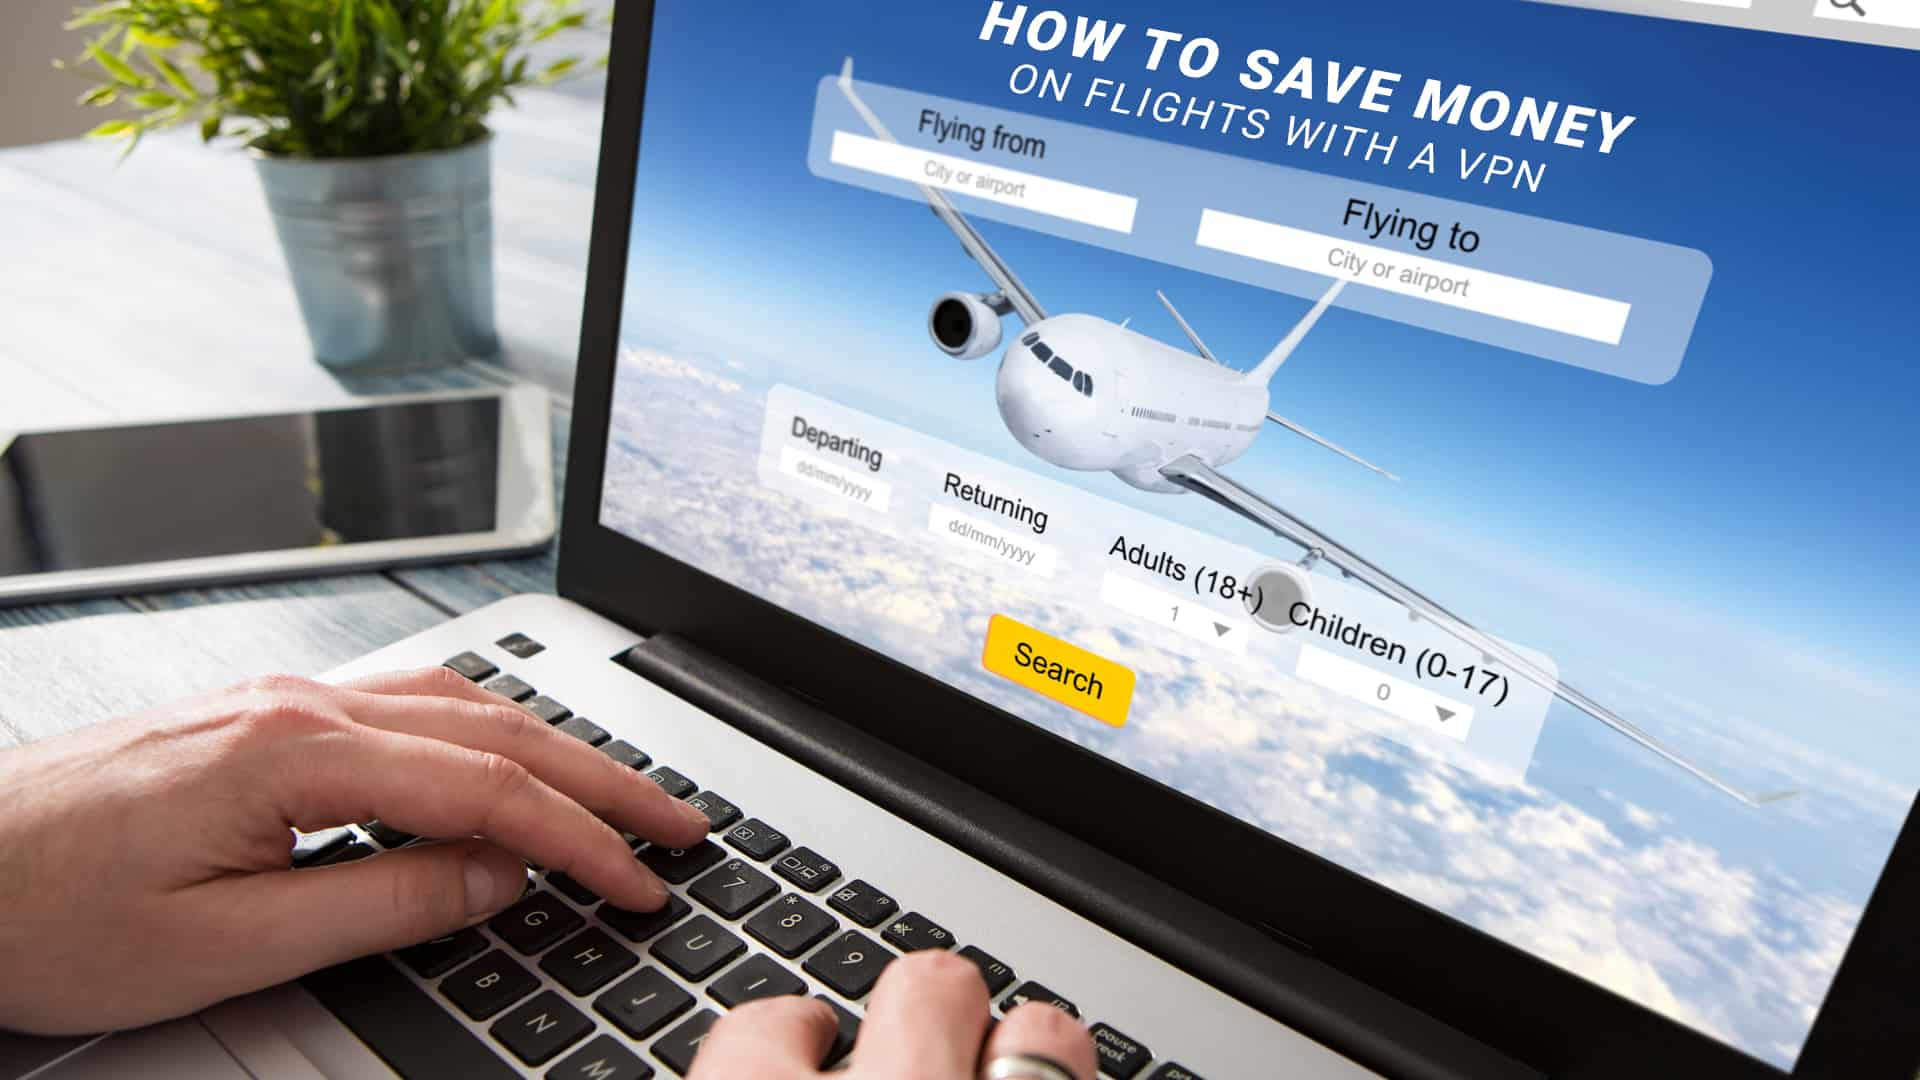 Why Buy a VPN Before Purchasing a Plane Ticket?